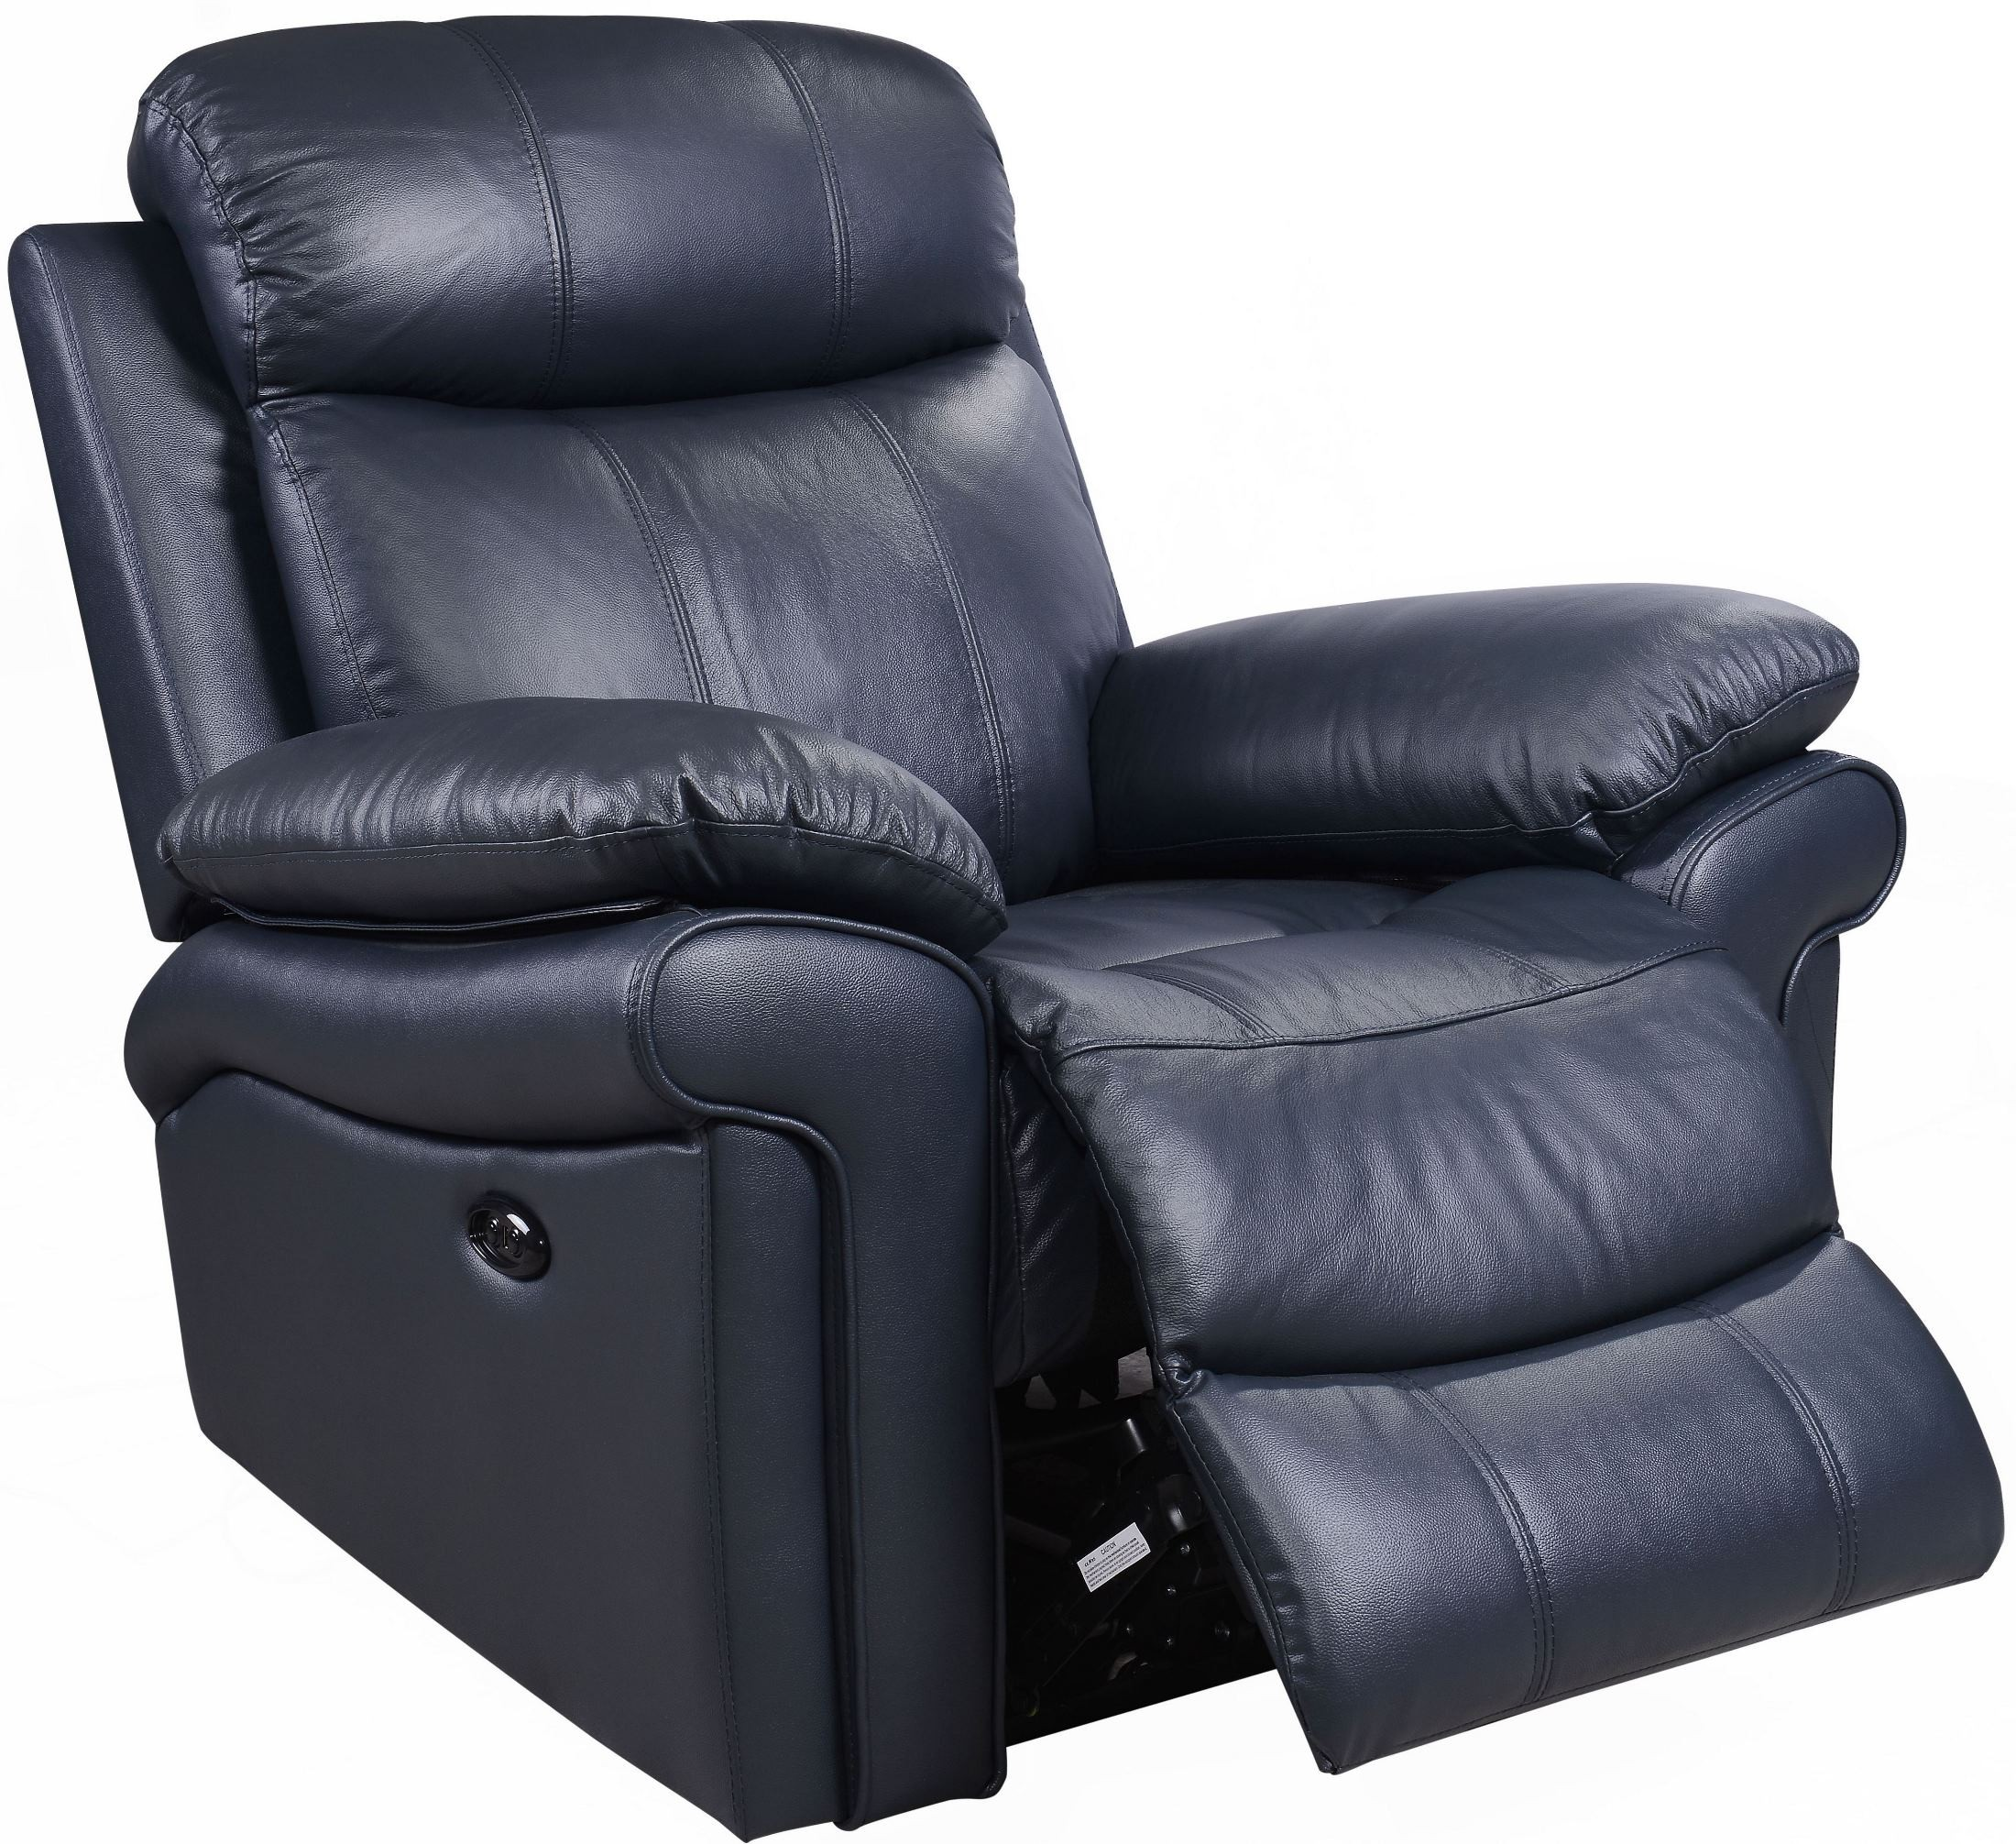 Shae Joplin Blue Leather Power Reclining Chair, 1555-E2117 ...